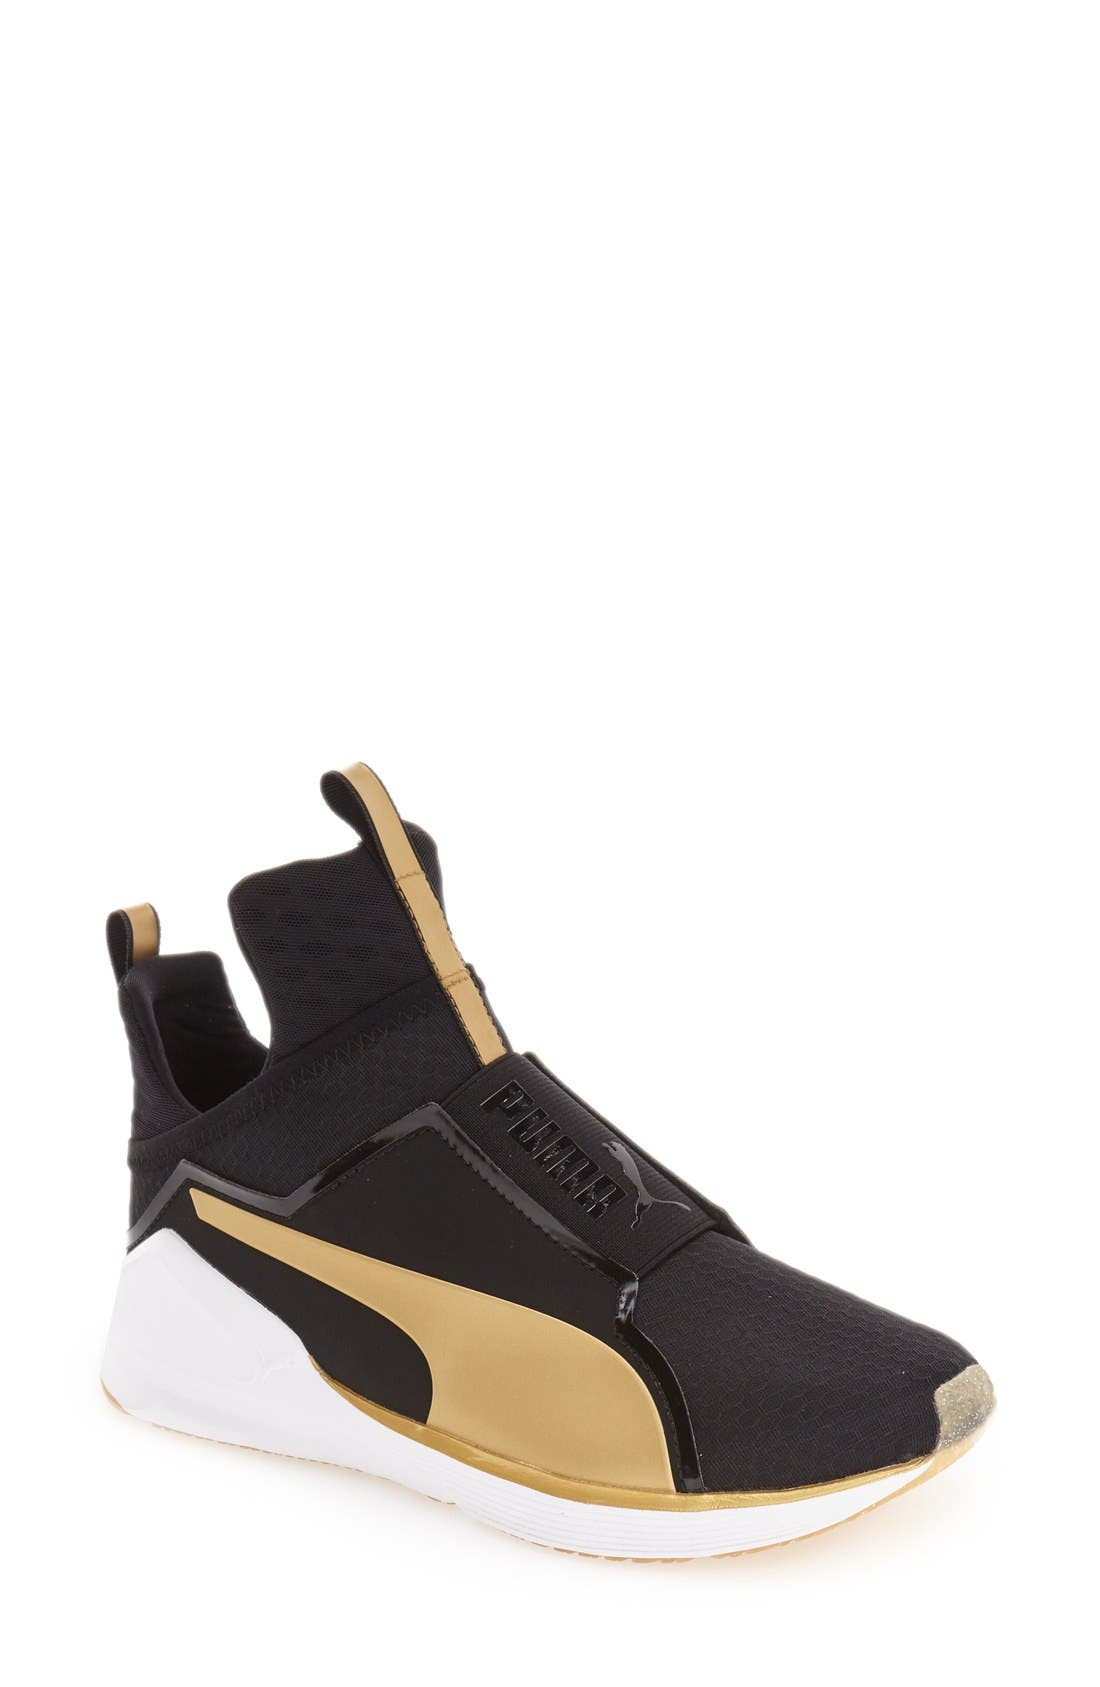 puma shoes nordstrom